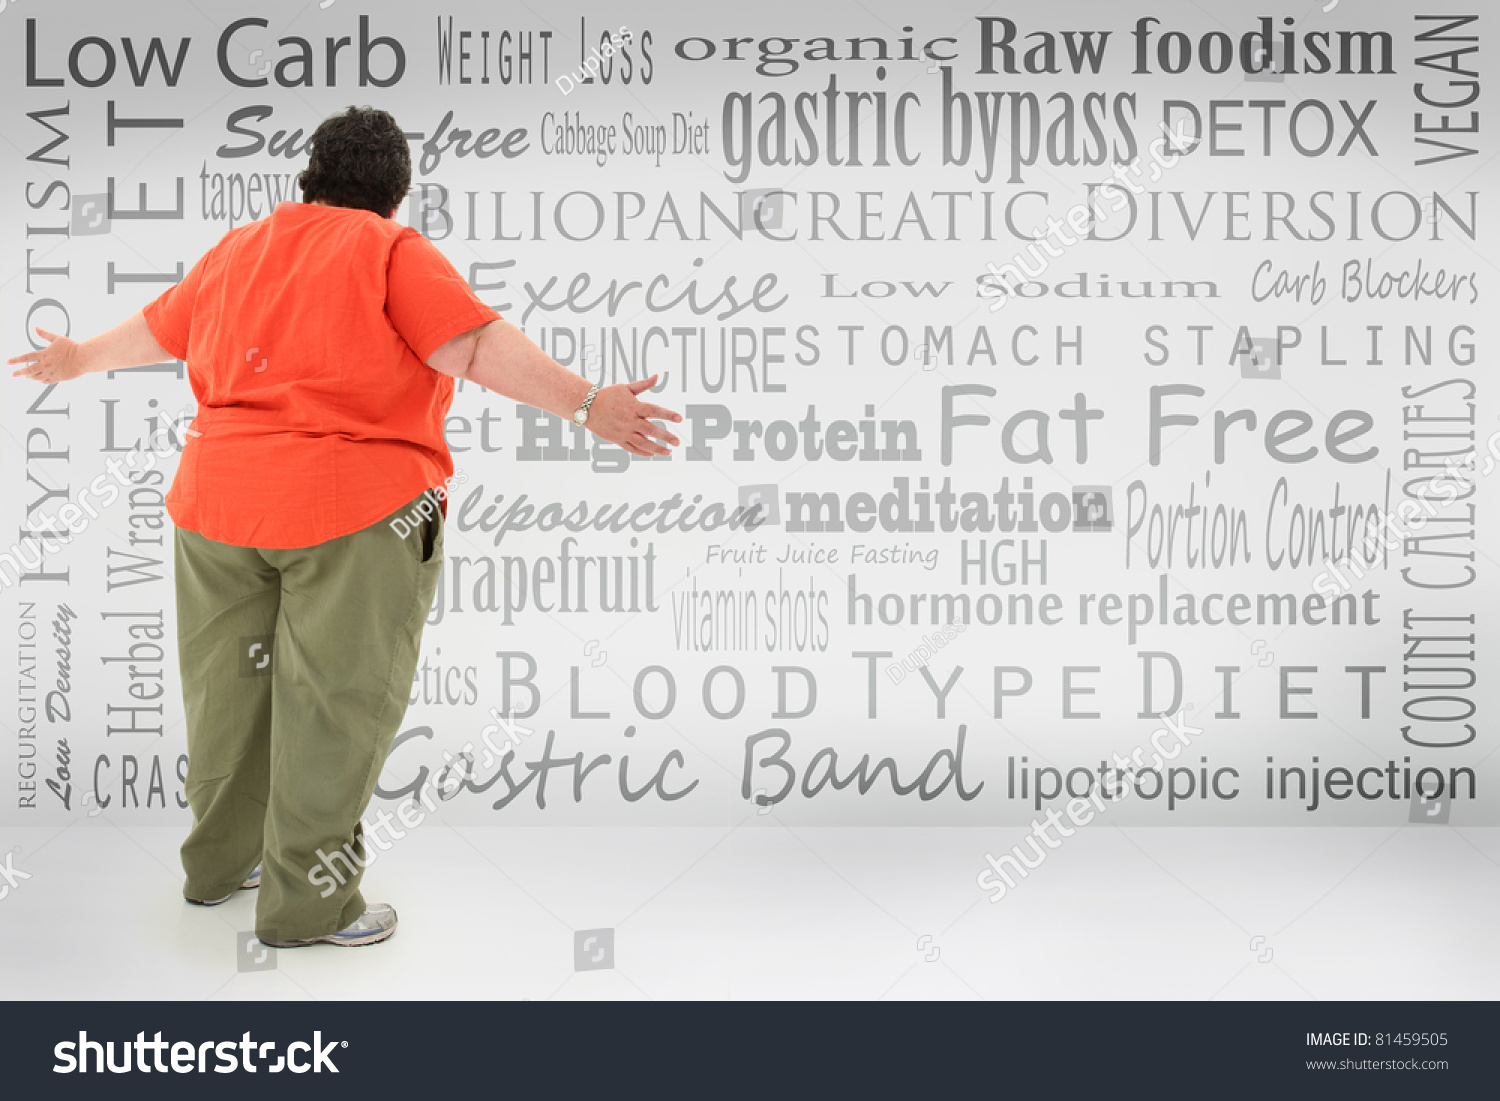 Overwhelmed Obese Woman Looking At List Of Fad Diets And Surgical Weight Loss Methods Written On